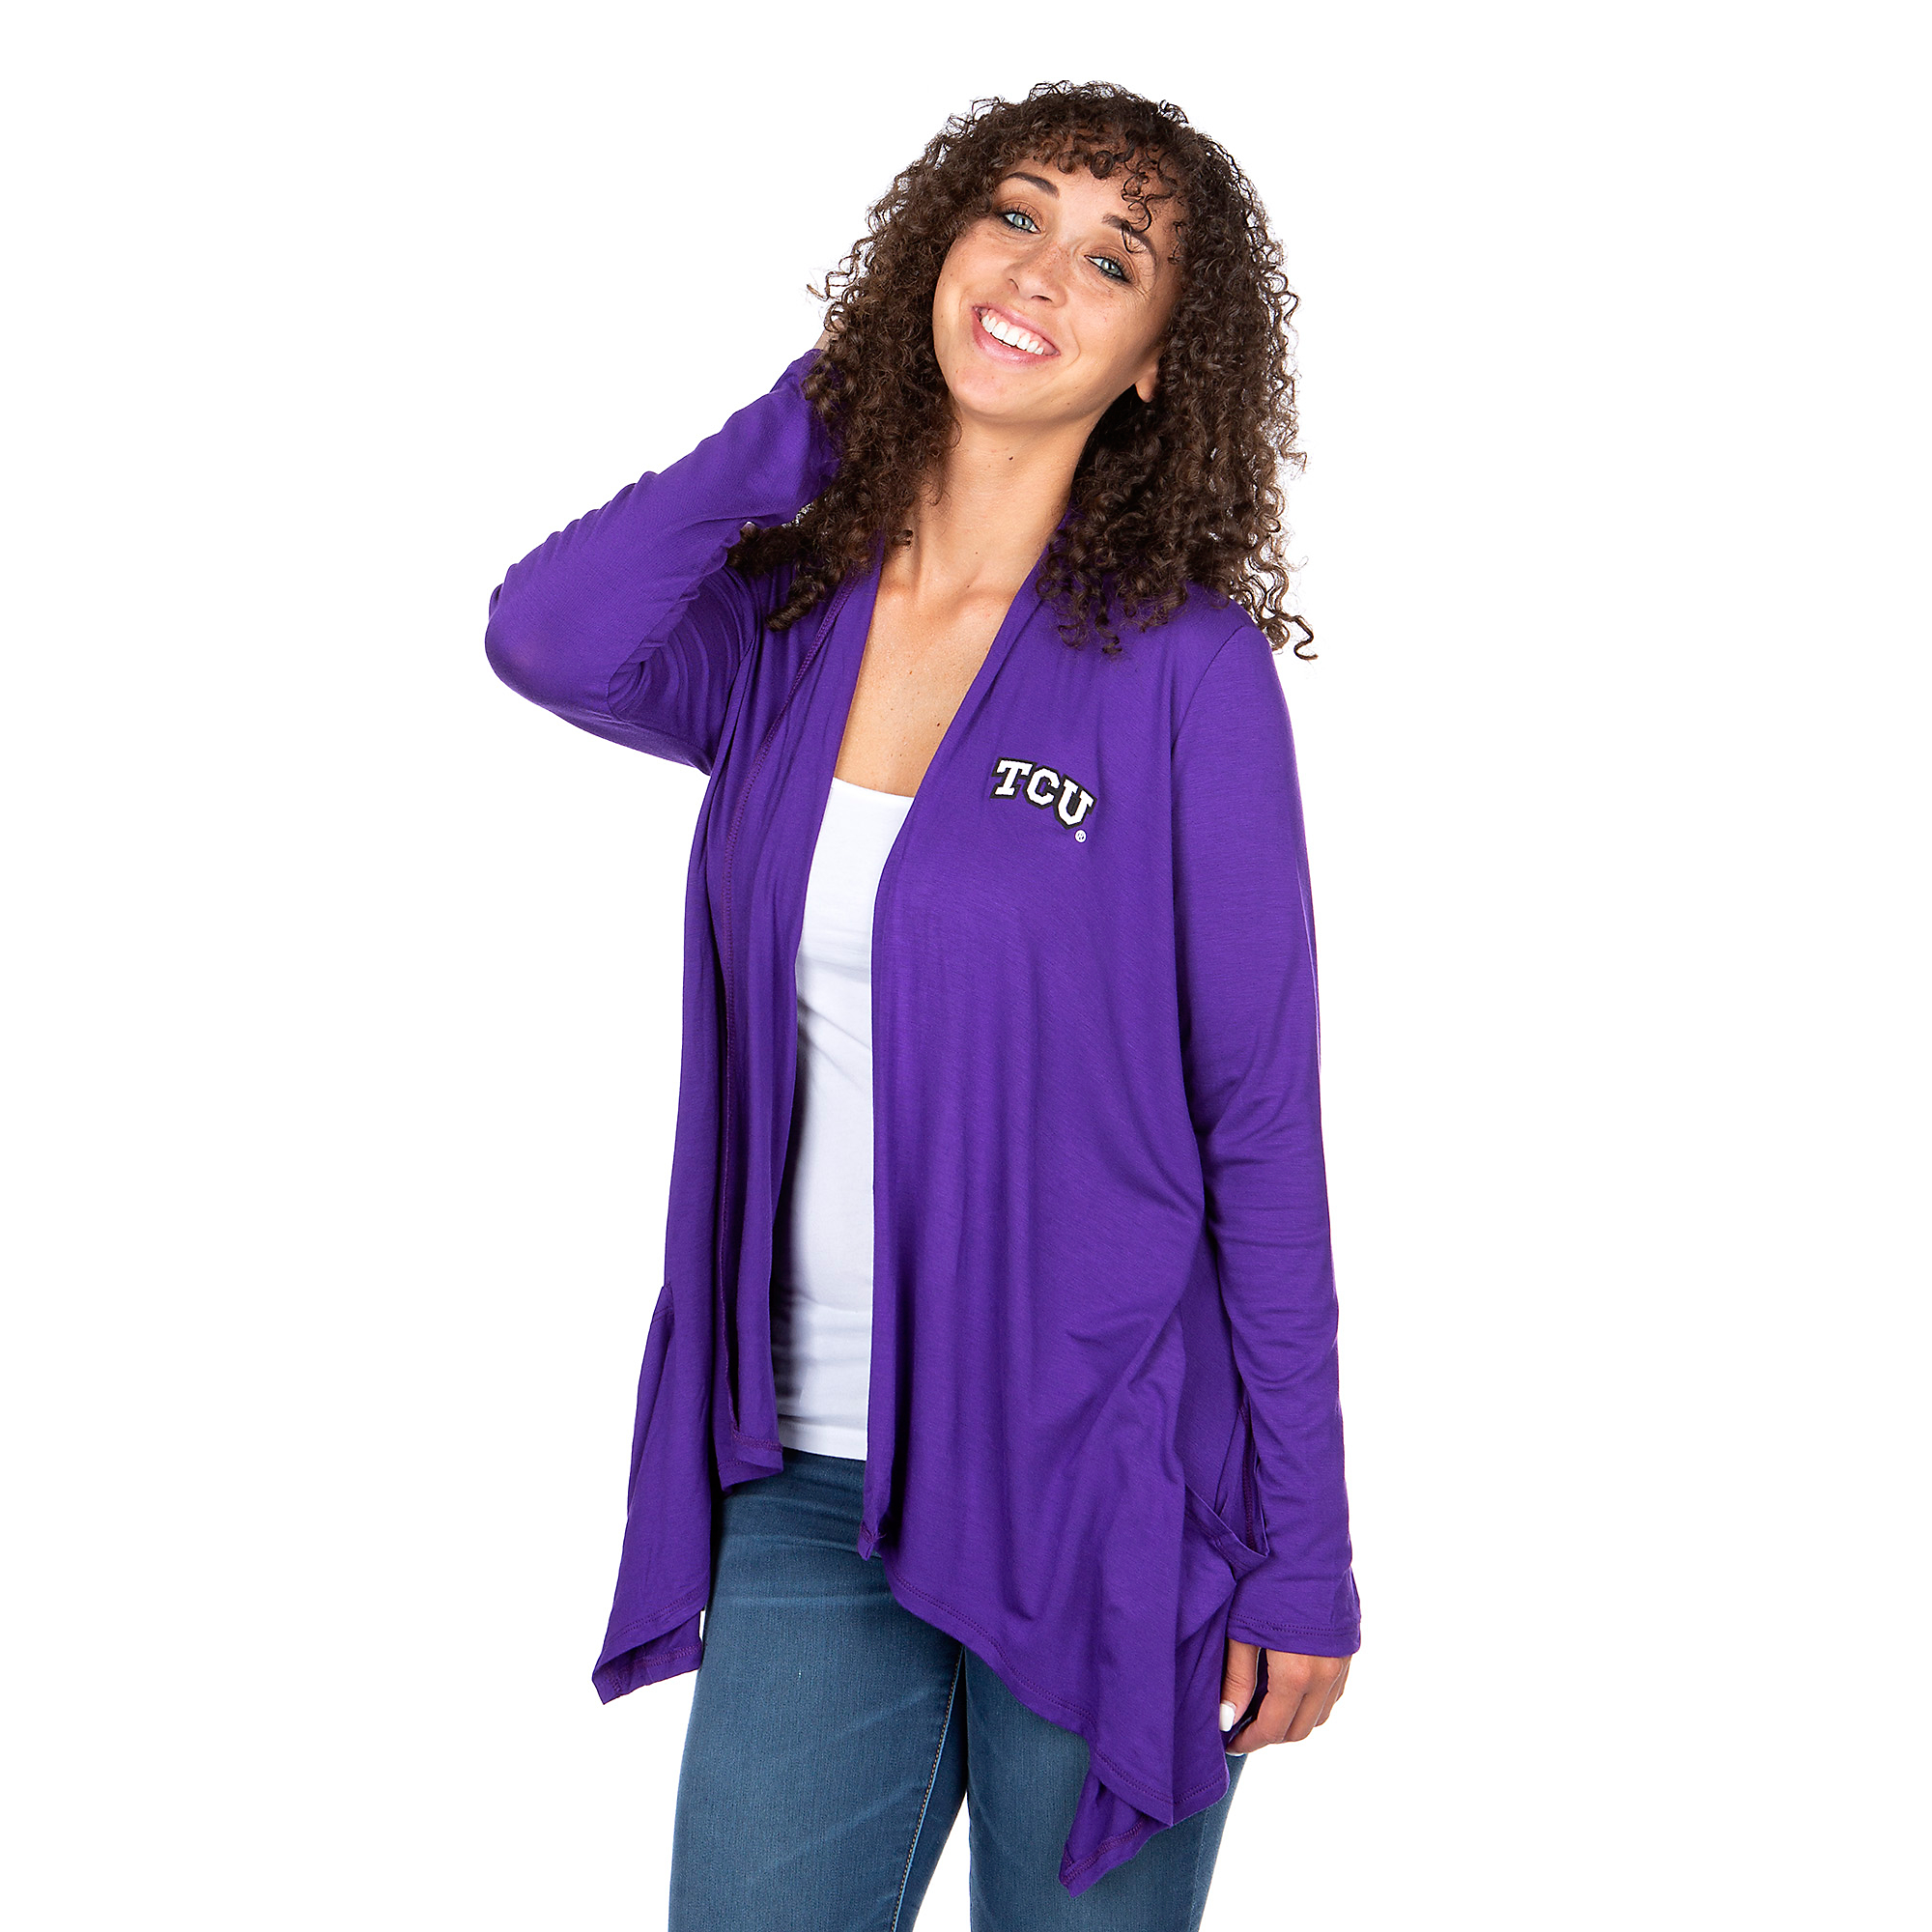 TCU Horned Frogs Womens Gameday Couture Carry On Cardigan